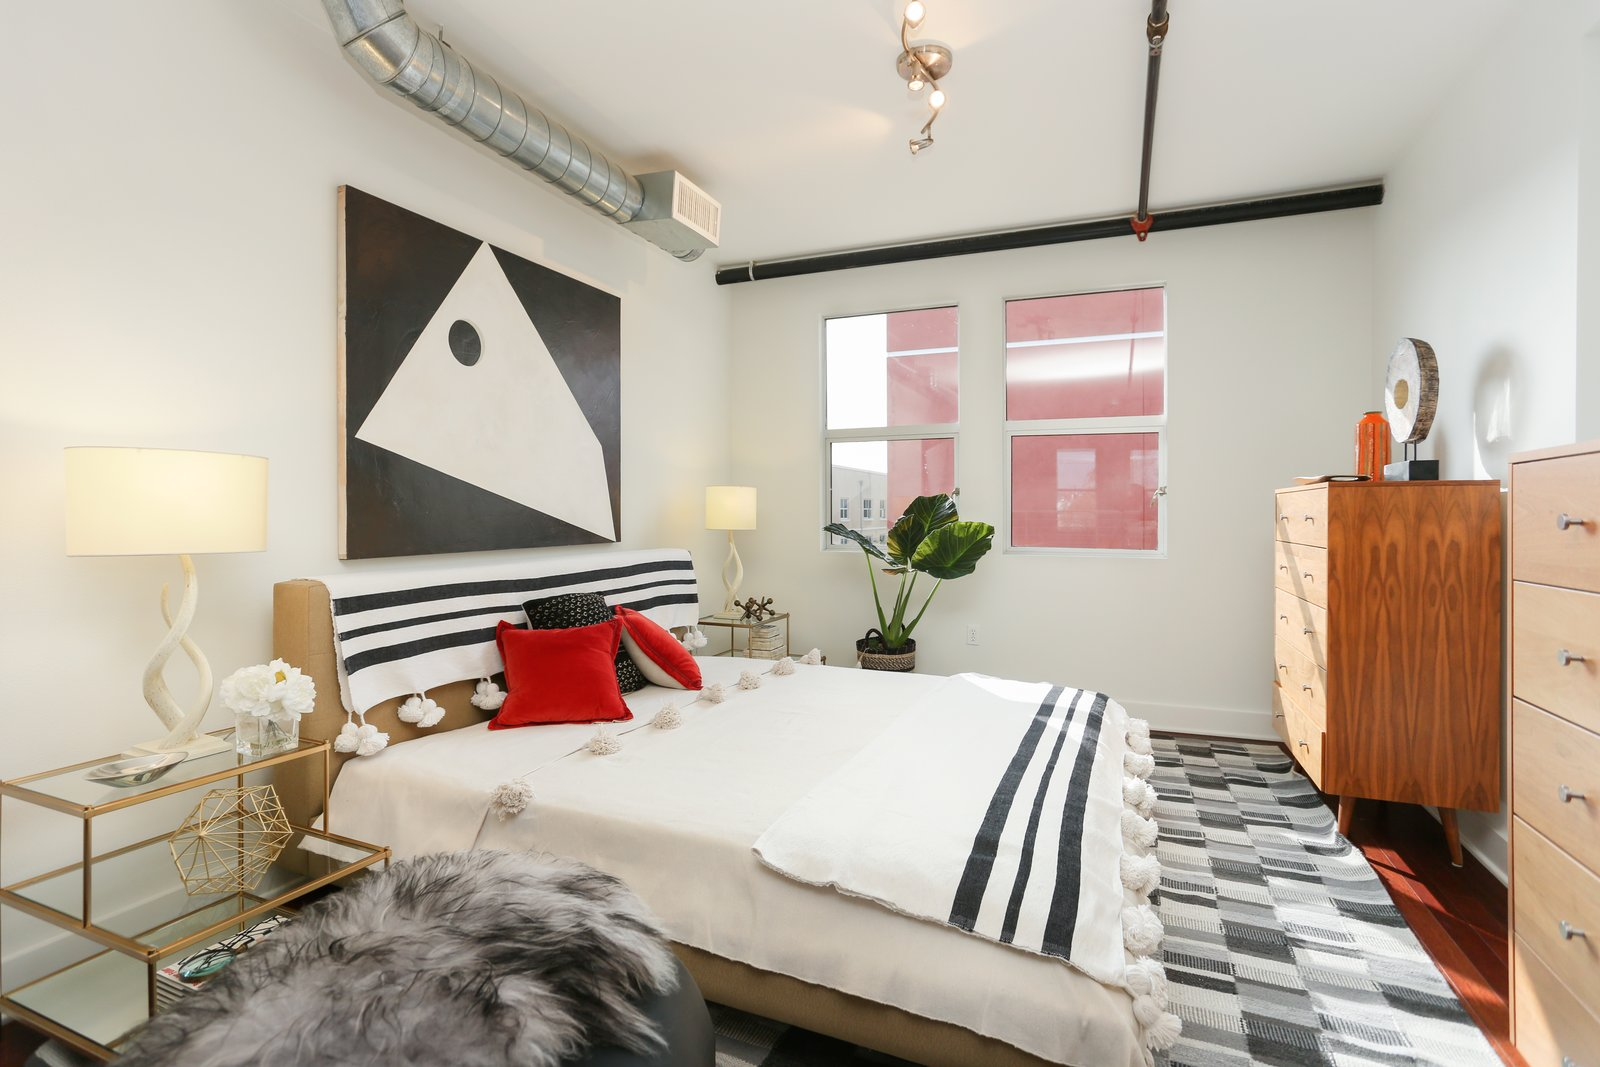 The bedroom is tucked into the loft space and sits under exposed air ducts and pipes—both of which add to the industrial vibe.  Photo 6 of 9 in A Designer Lists Her Three-Story Live/Work Loft in Orange County For $525K